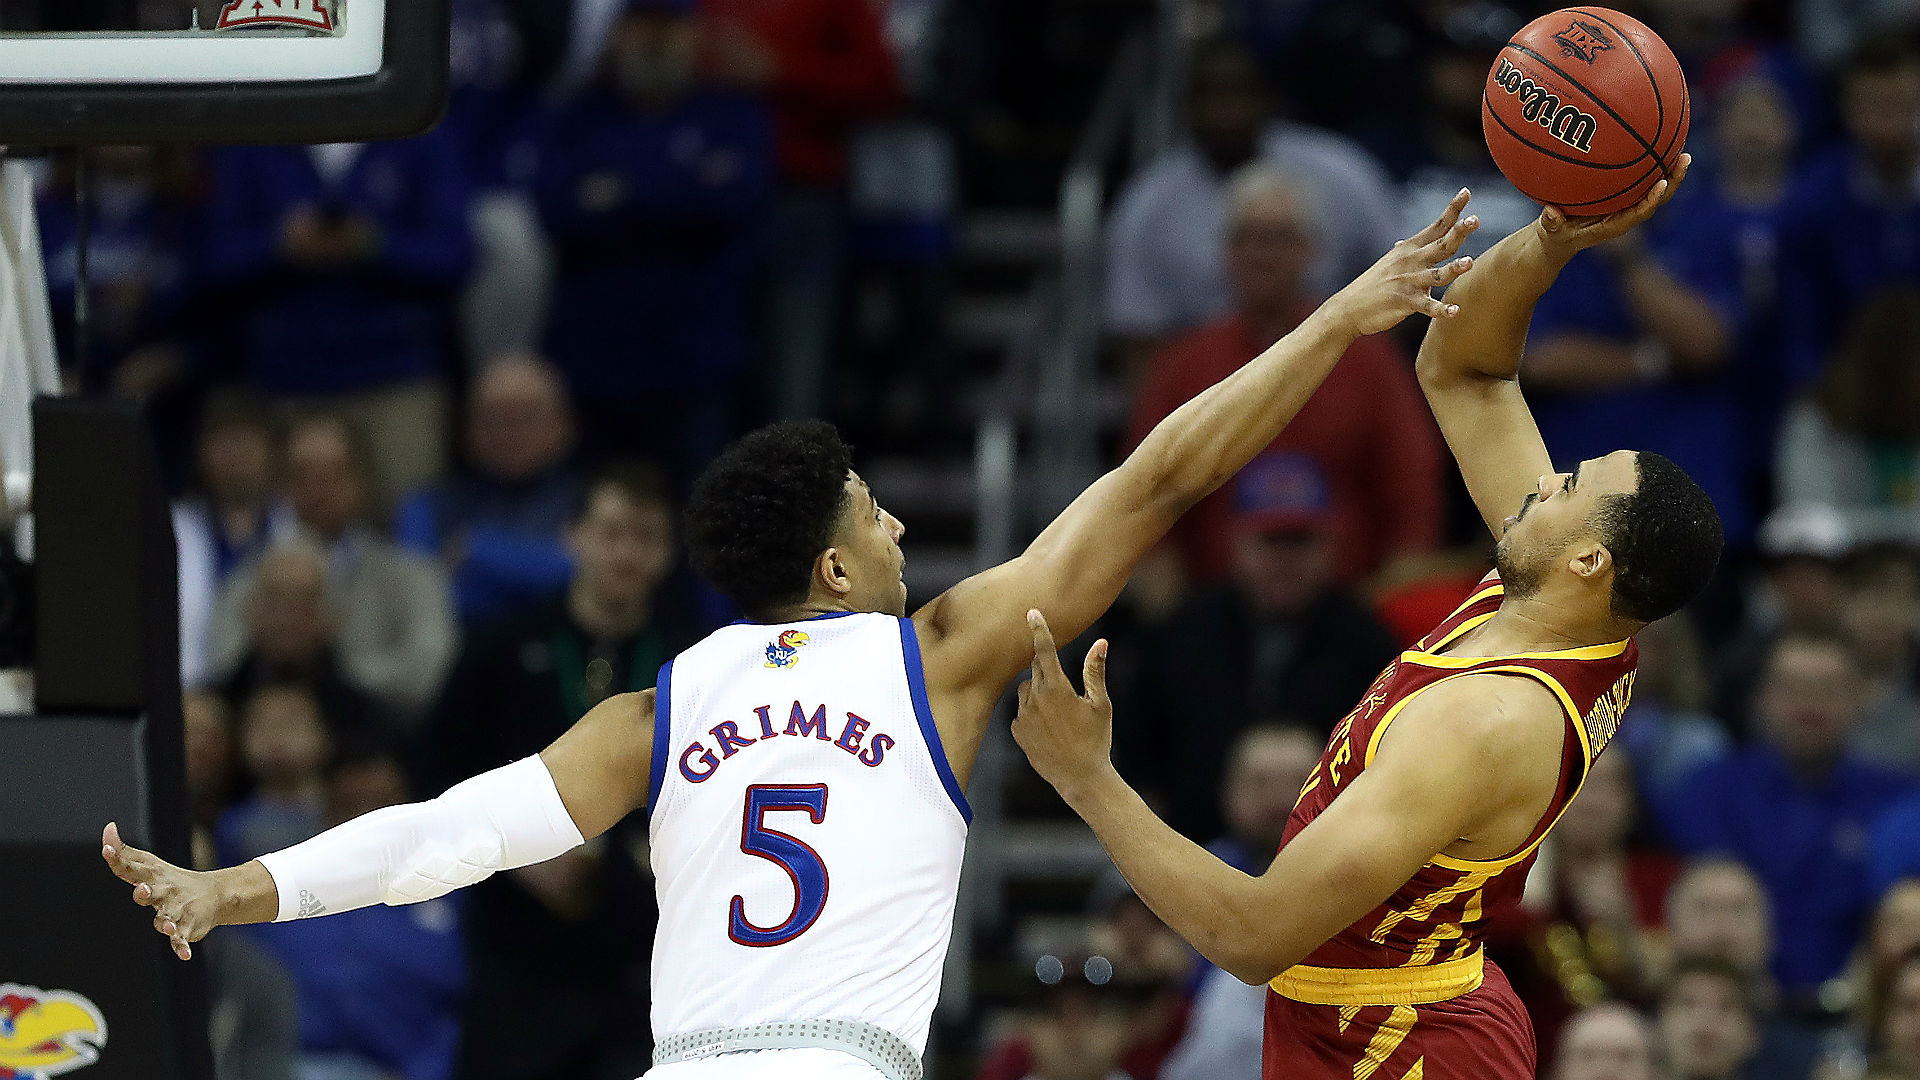 Iowa State topples Kansas to win Big 12 Tournament title